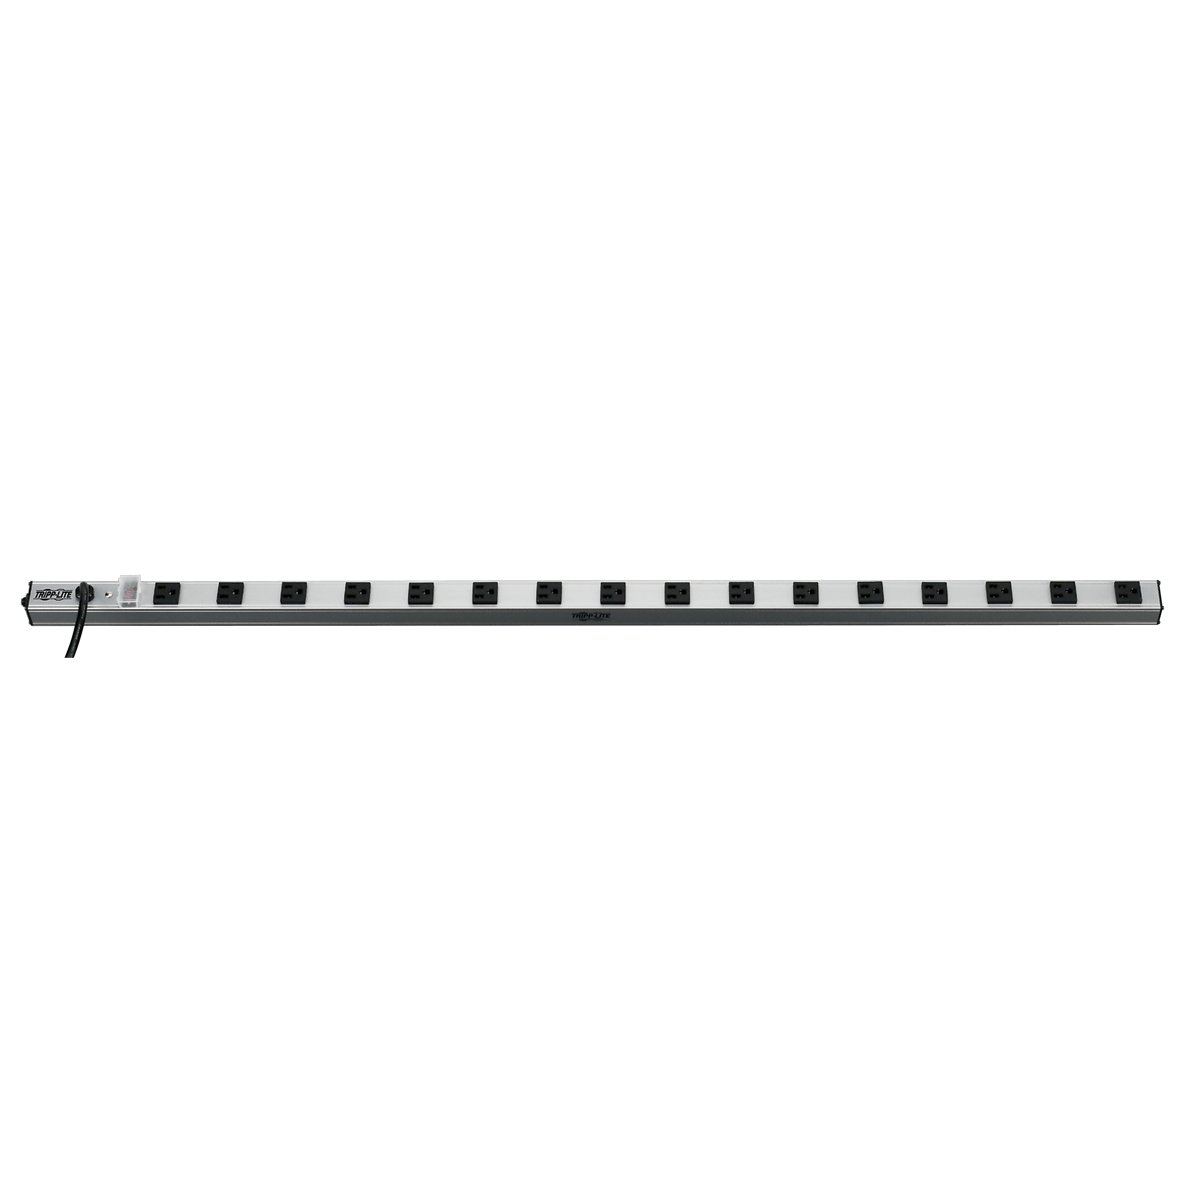 Tripp Lite 16 Outlet Bench & Cabinet Power Strip, 48 in. Length, 15ft Cord with 5-15P Plug (PS4816)